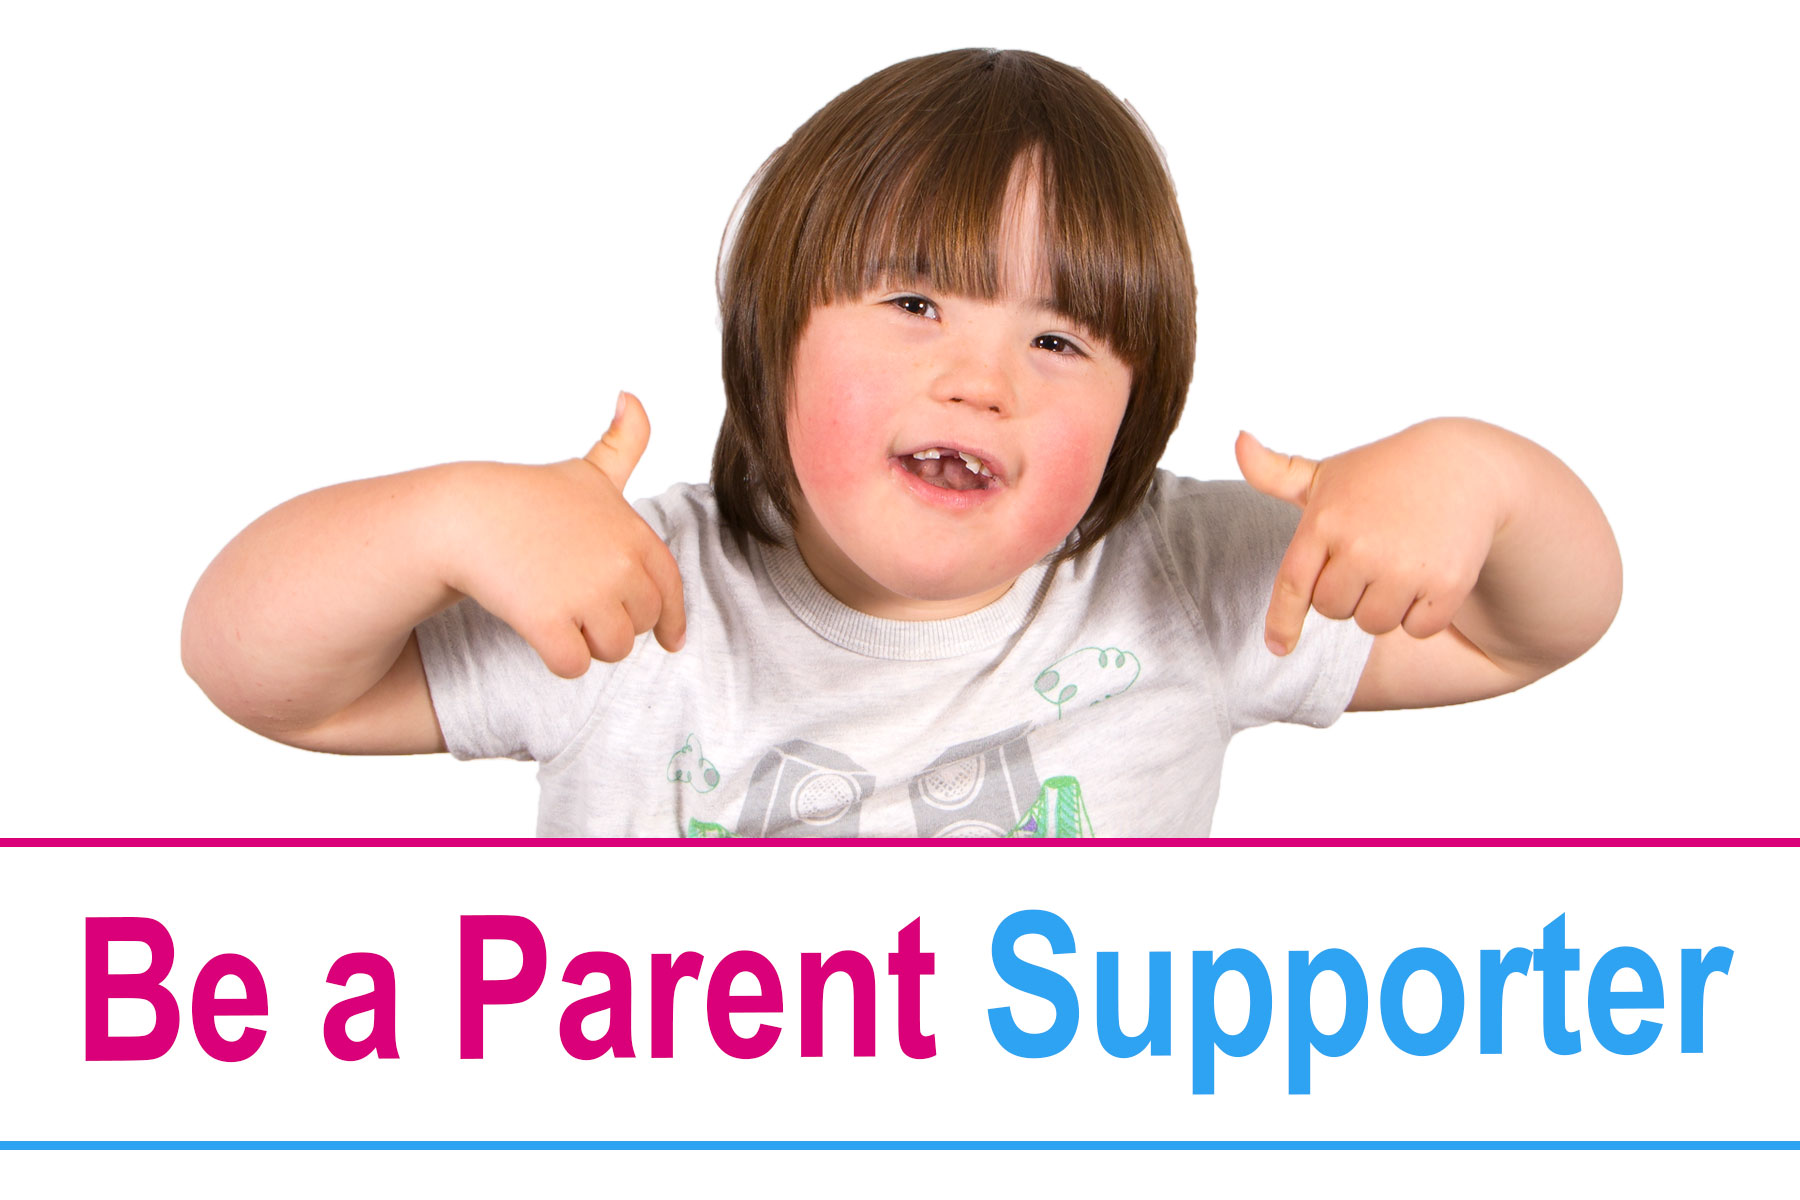 Be a Parent Supporter - Ups and Downs Southwest